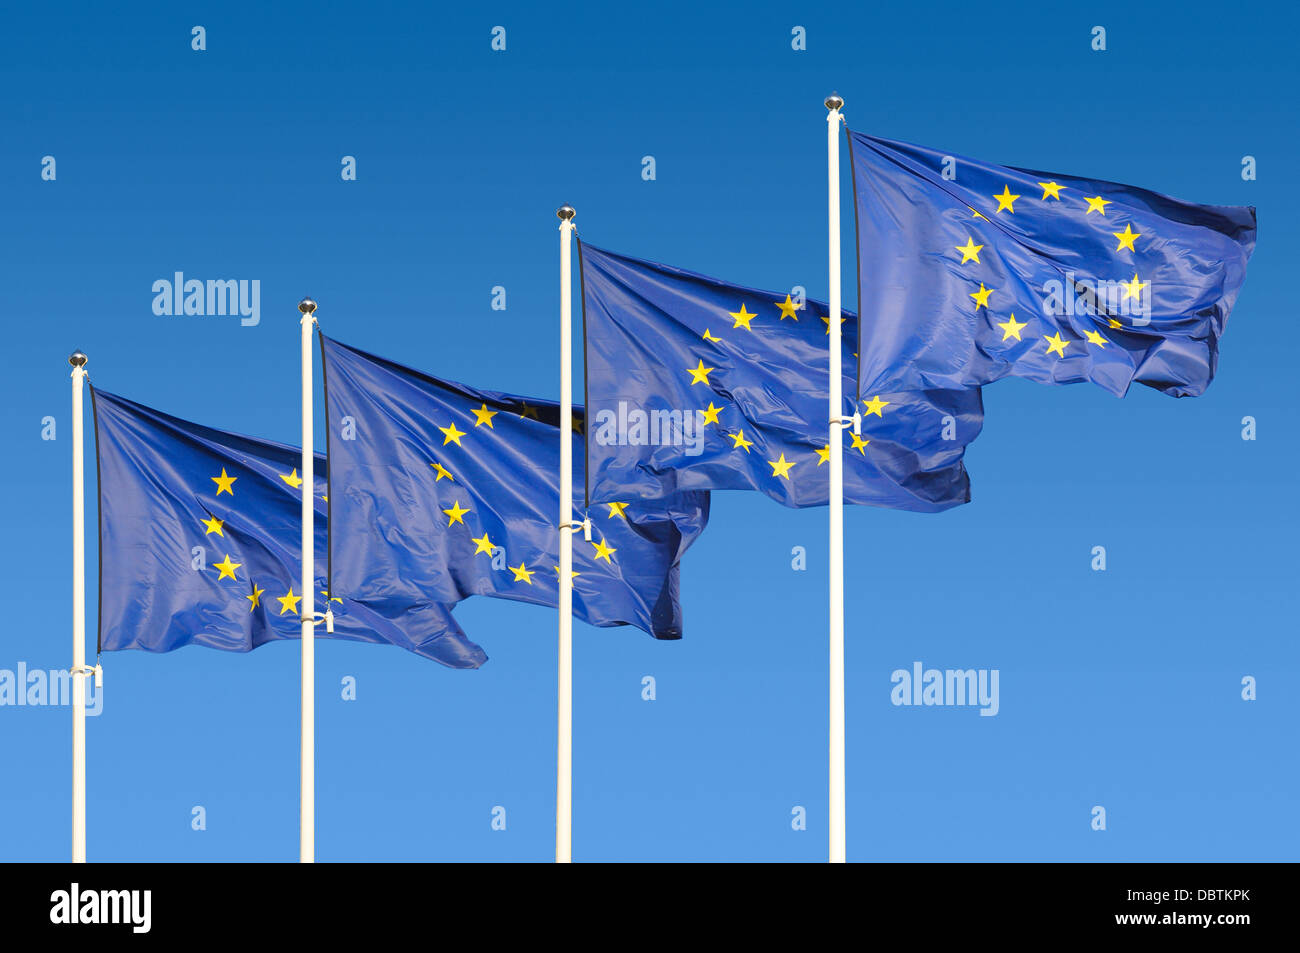 European Union Flags over sky background Stock Photo